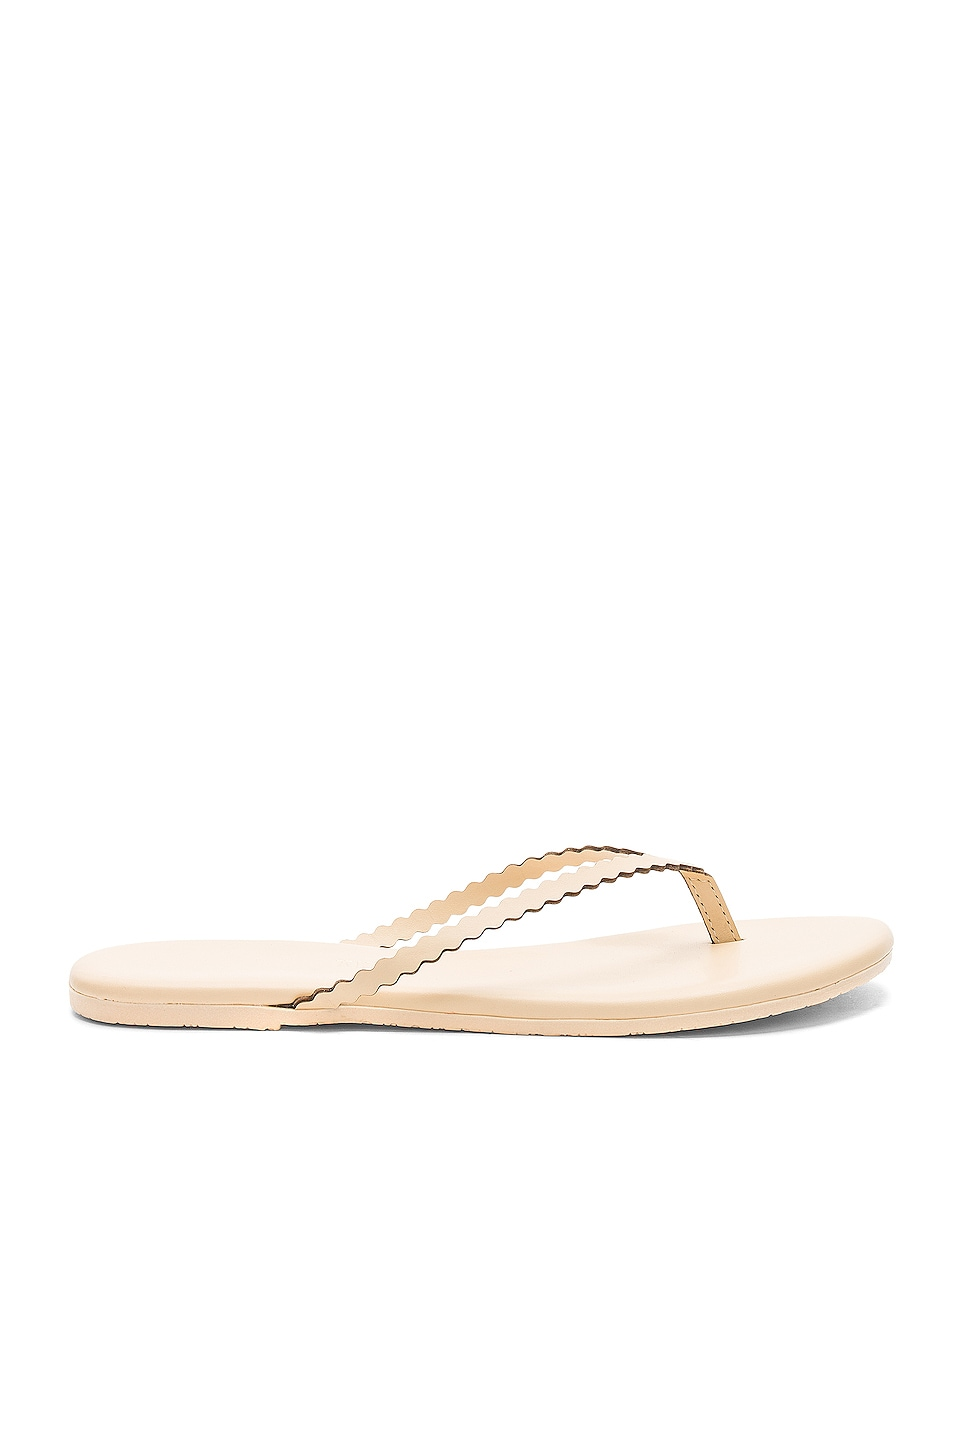 TKEES Studio Scalloped Sandal in Bella